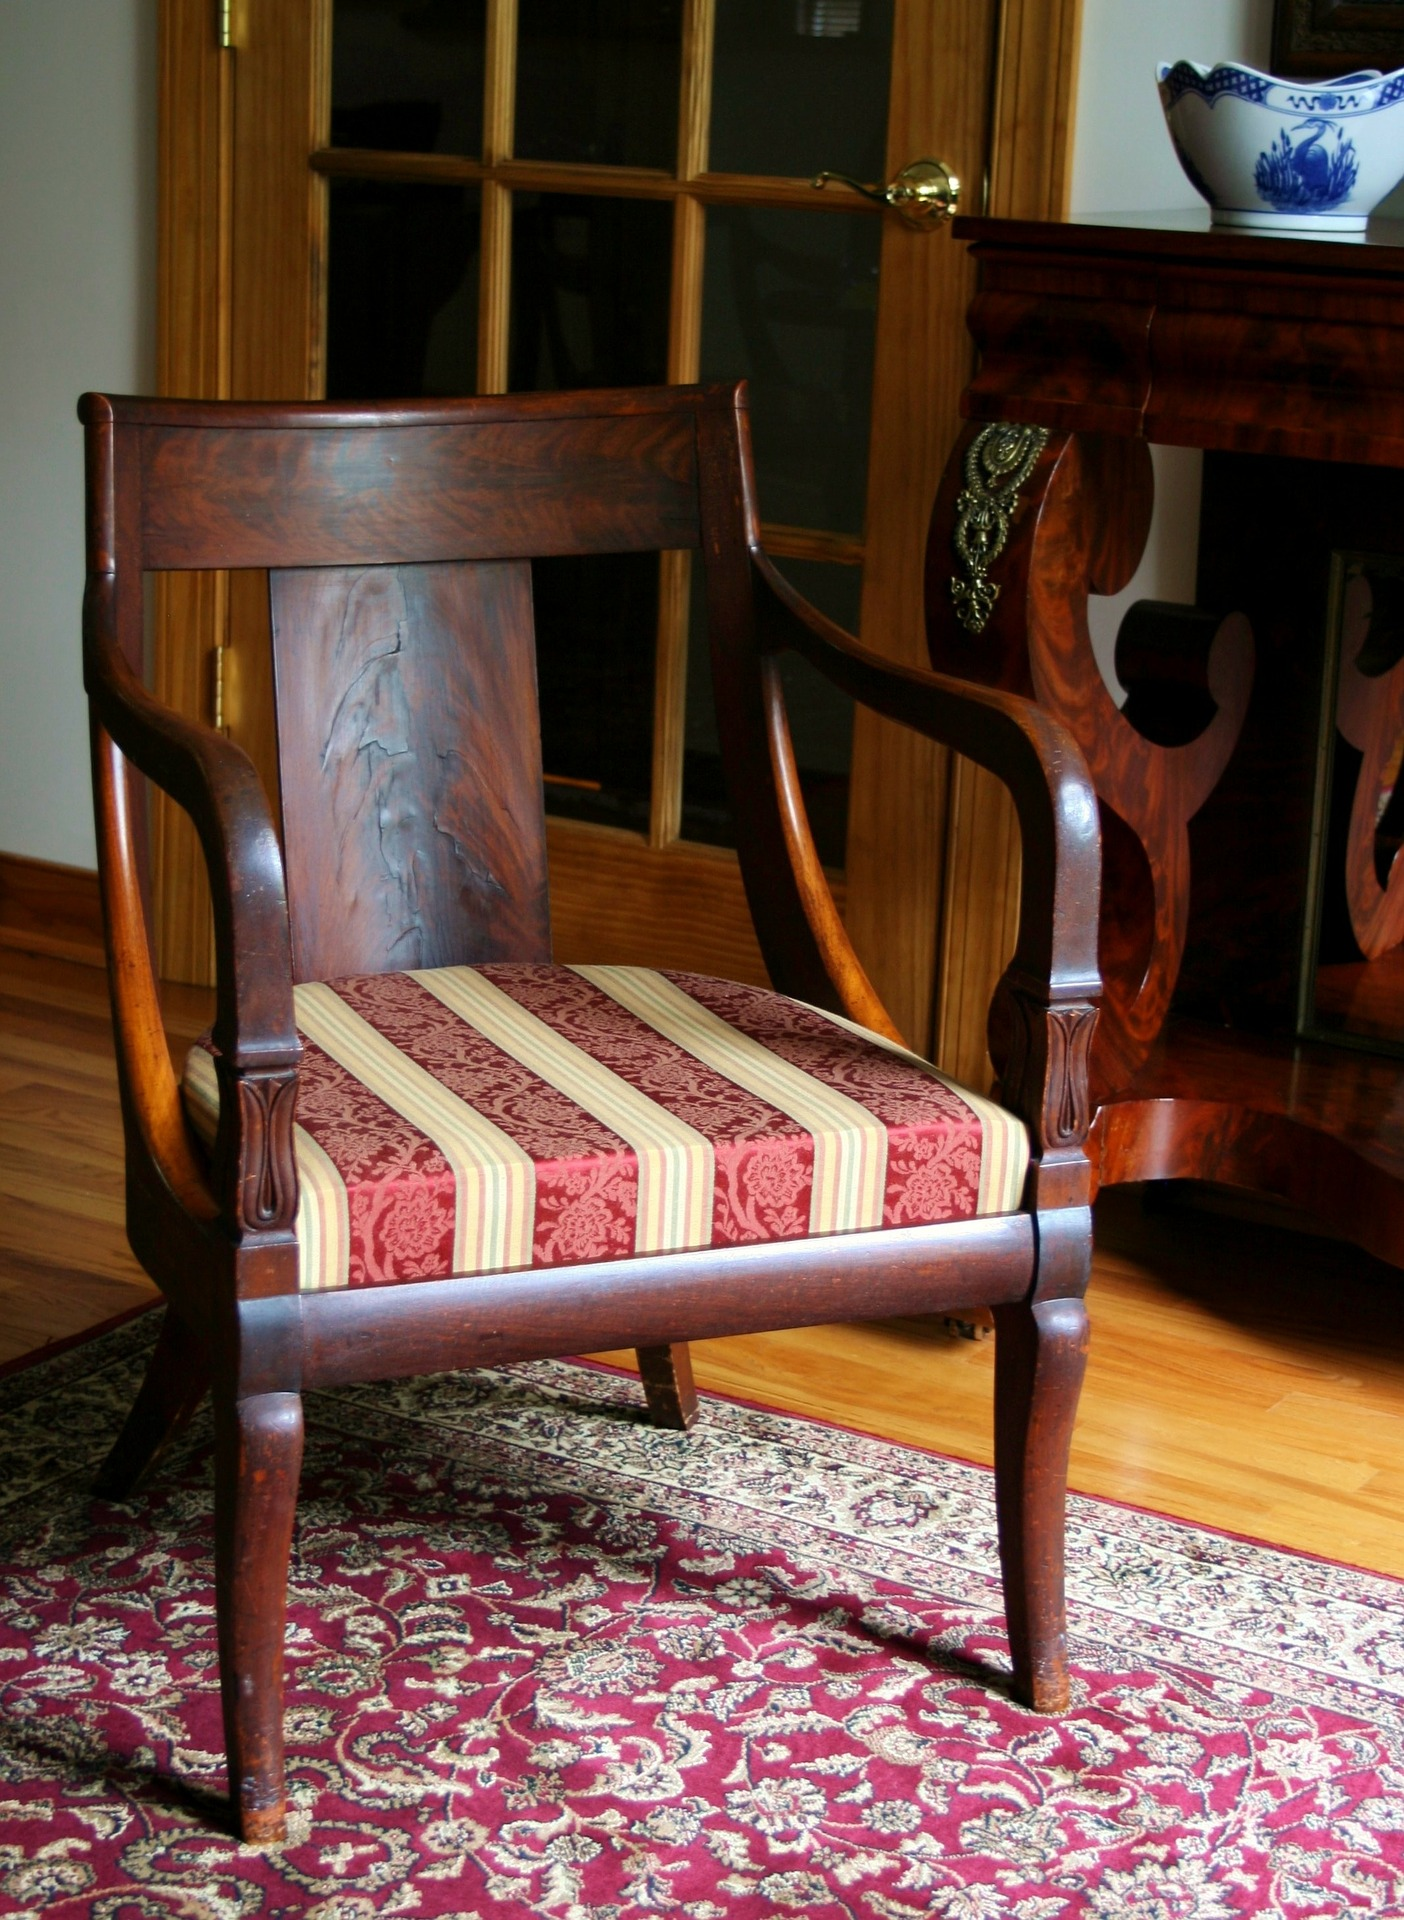 Finding appraisers of antique furniture - What's It Worth? Find The Value Of Your Inherited Furniture